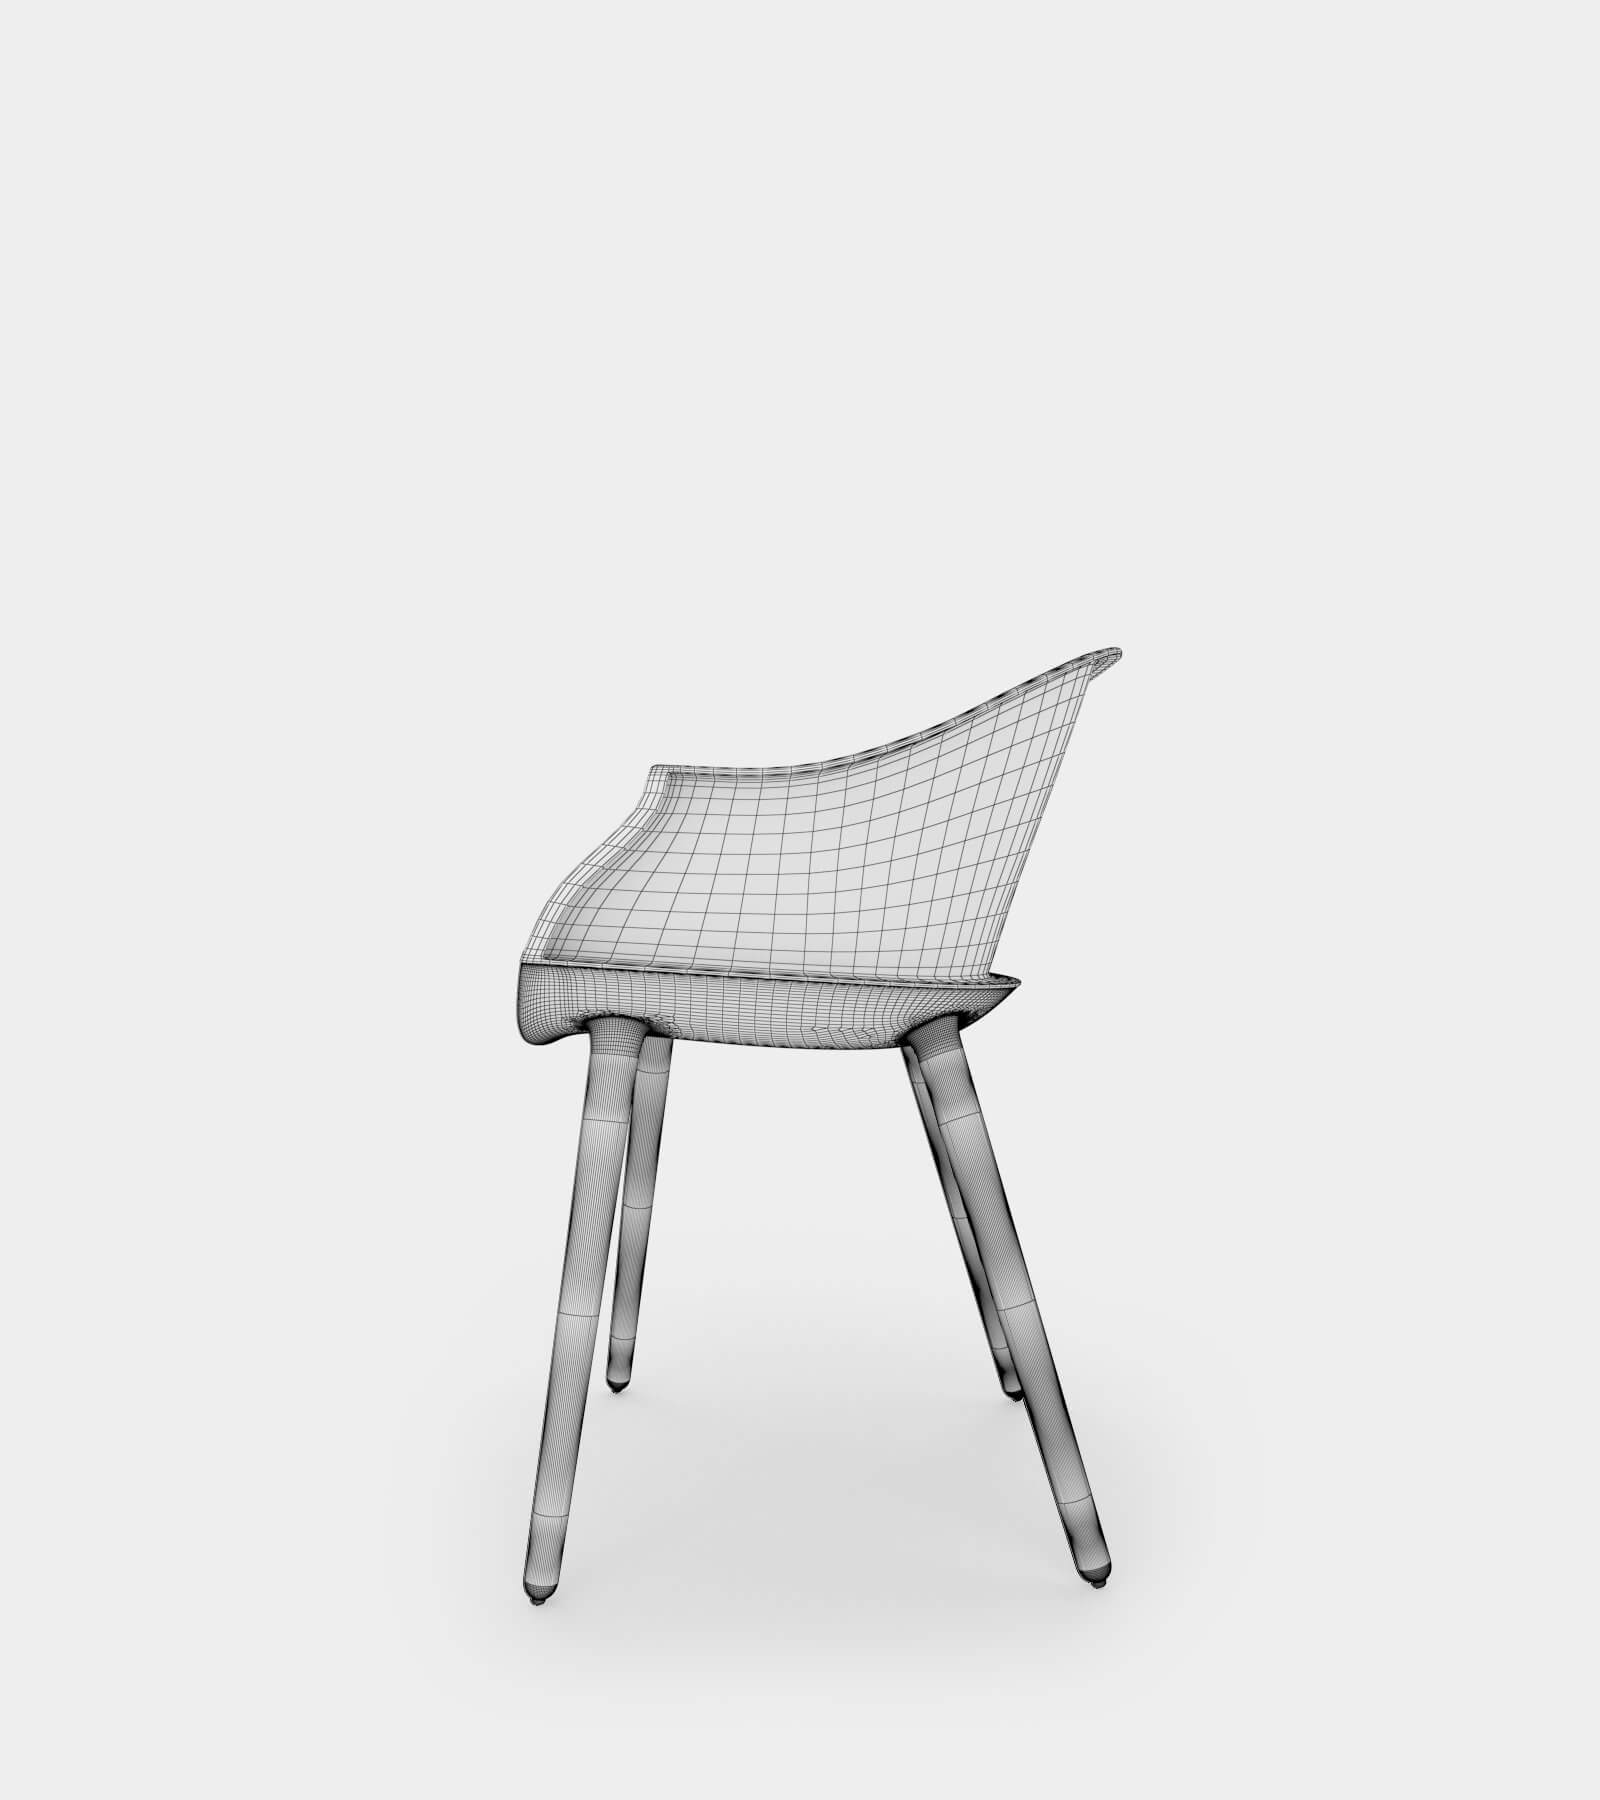 Round armchair & dining chair-wire-2 3D Model